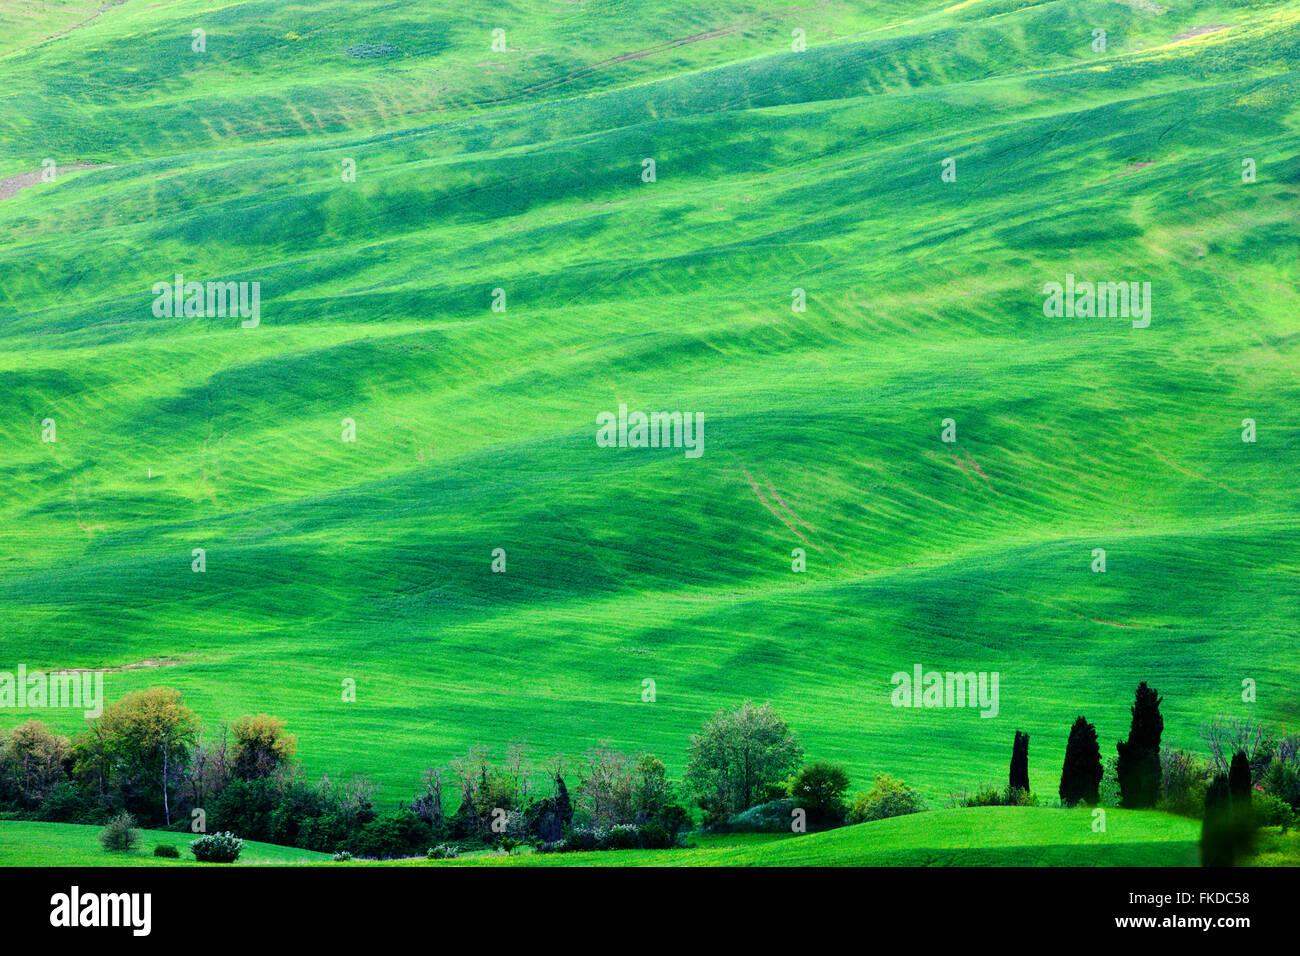 Green rolling landscape - Stock Image